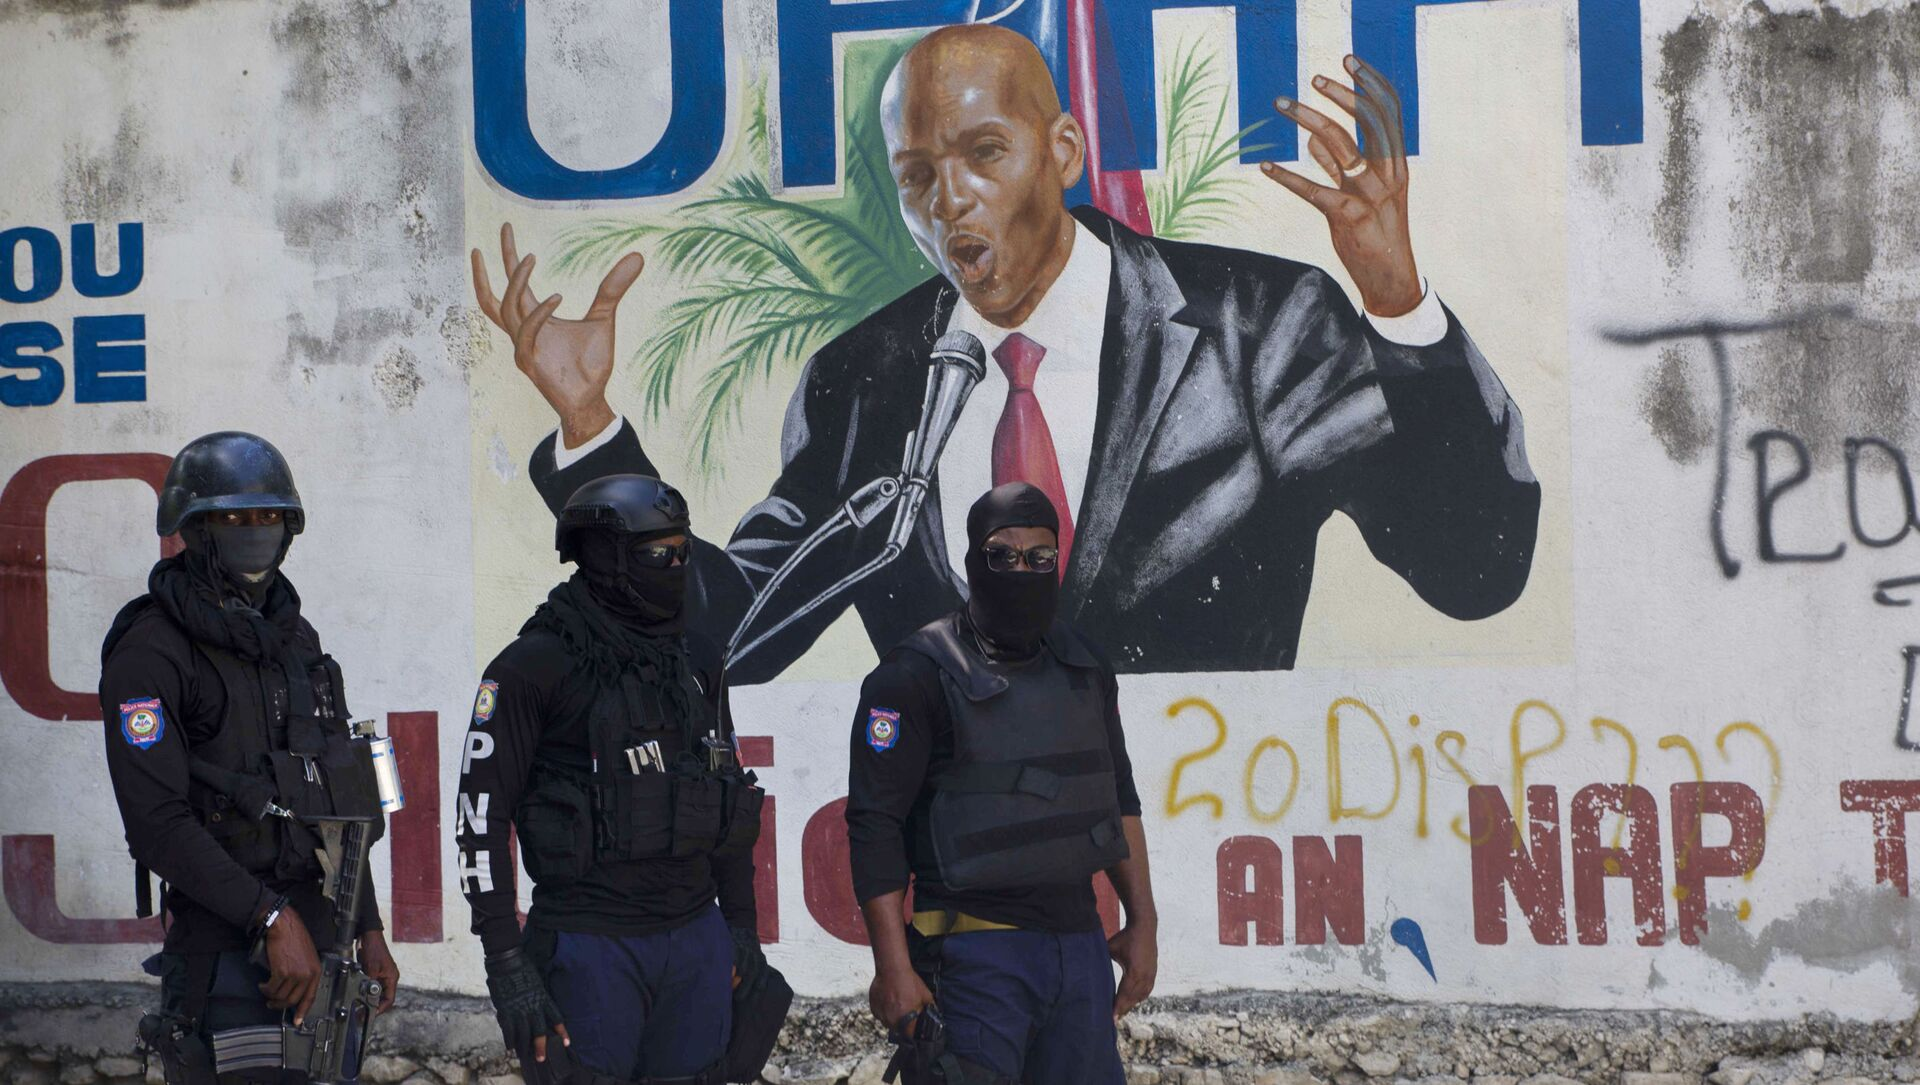 Police stand near a mural featuring Haitian President Jovenel Moise, near the leader's residence where he was killed by gunmen in the early morning hours in Port-au-Prince, Haiti, Wednesday, July 7, 2021. - Sputnik International, 1920, 04.08.2021